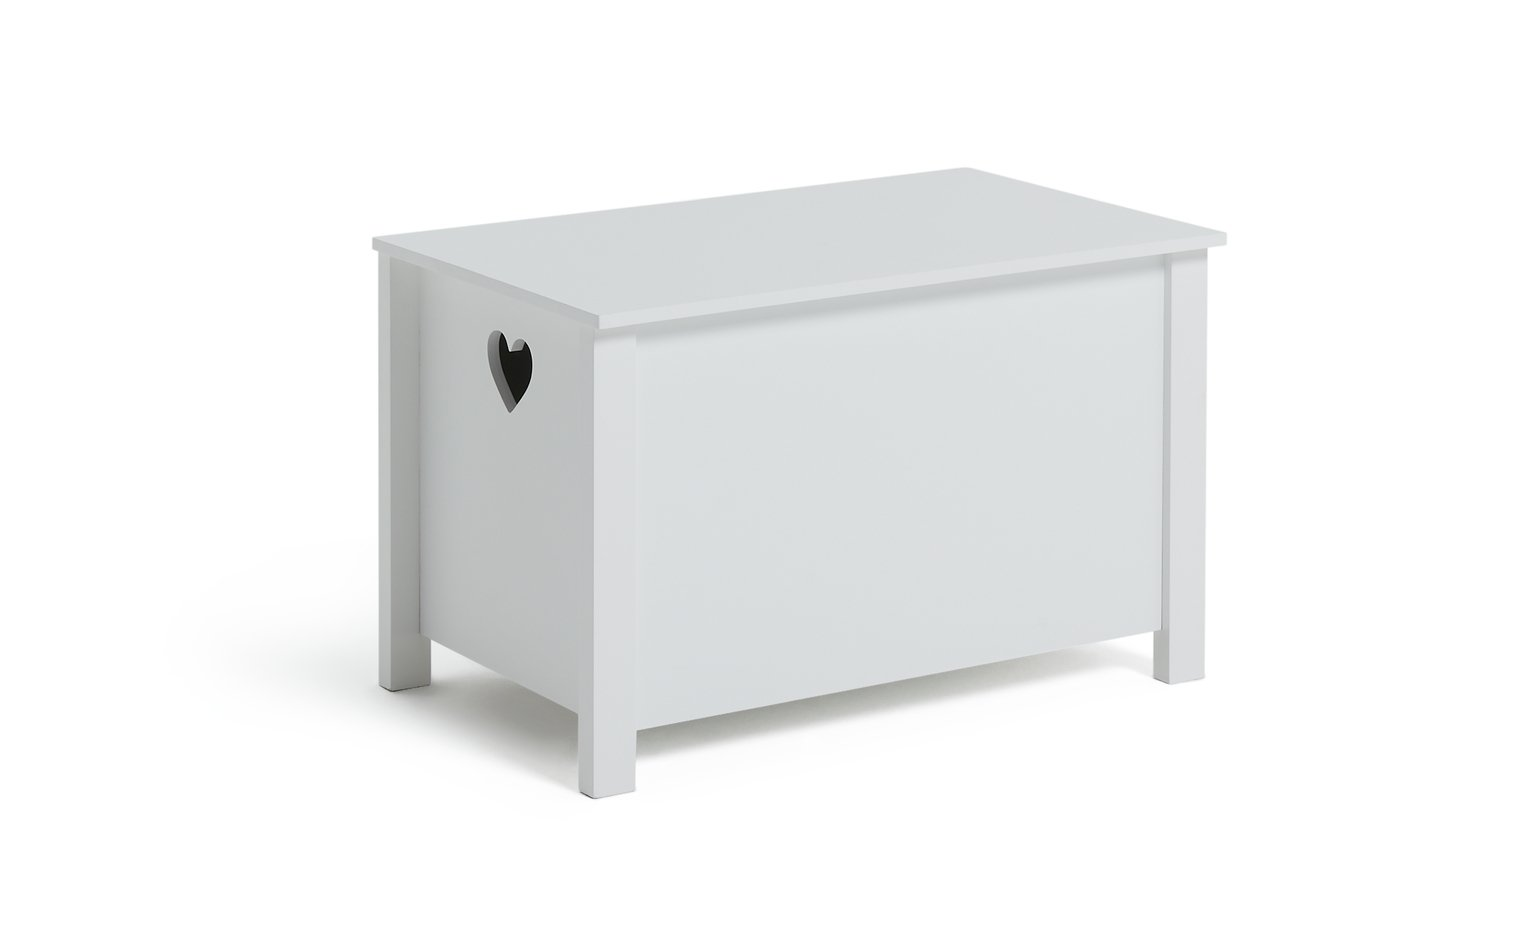 Image of Collection New Mia Toy Box - White